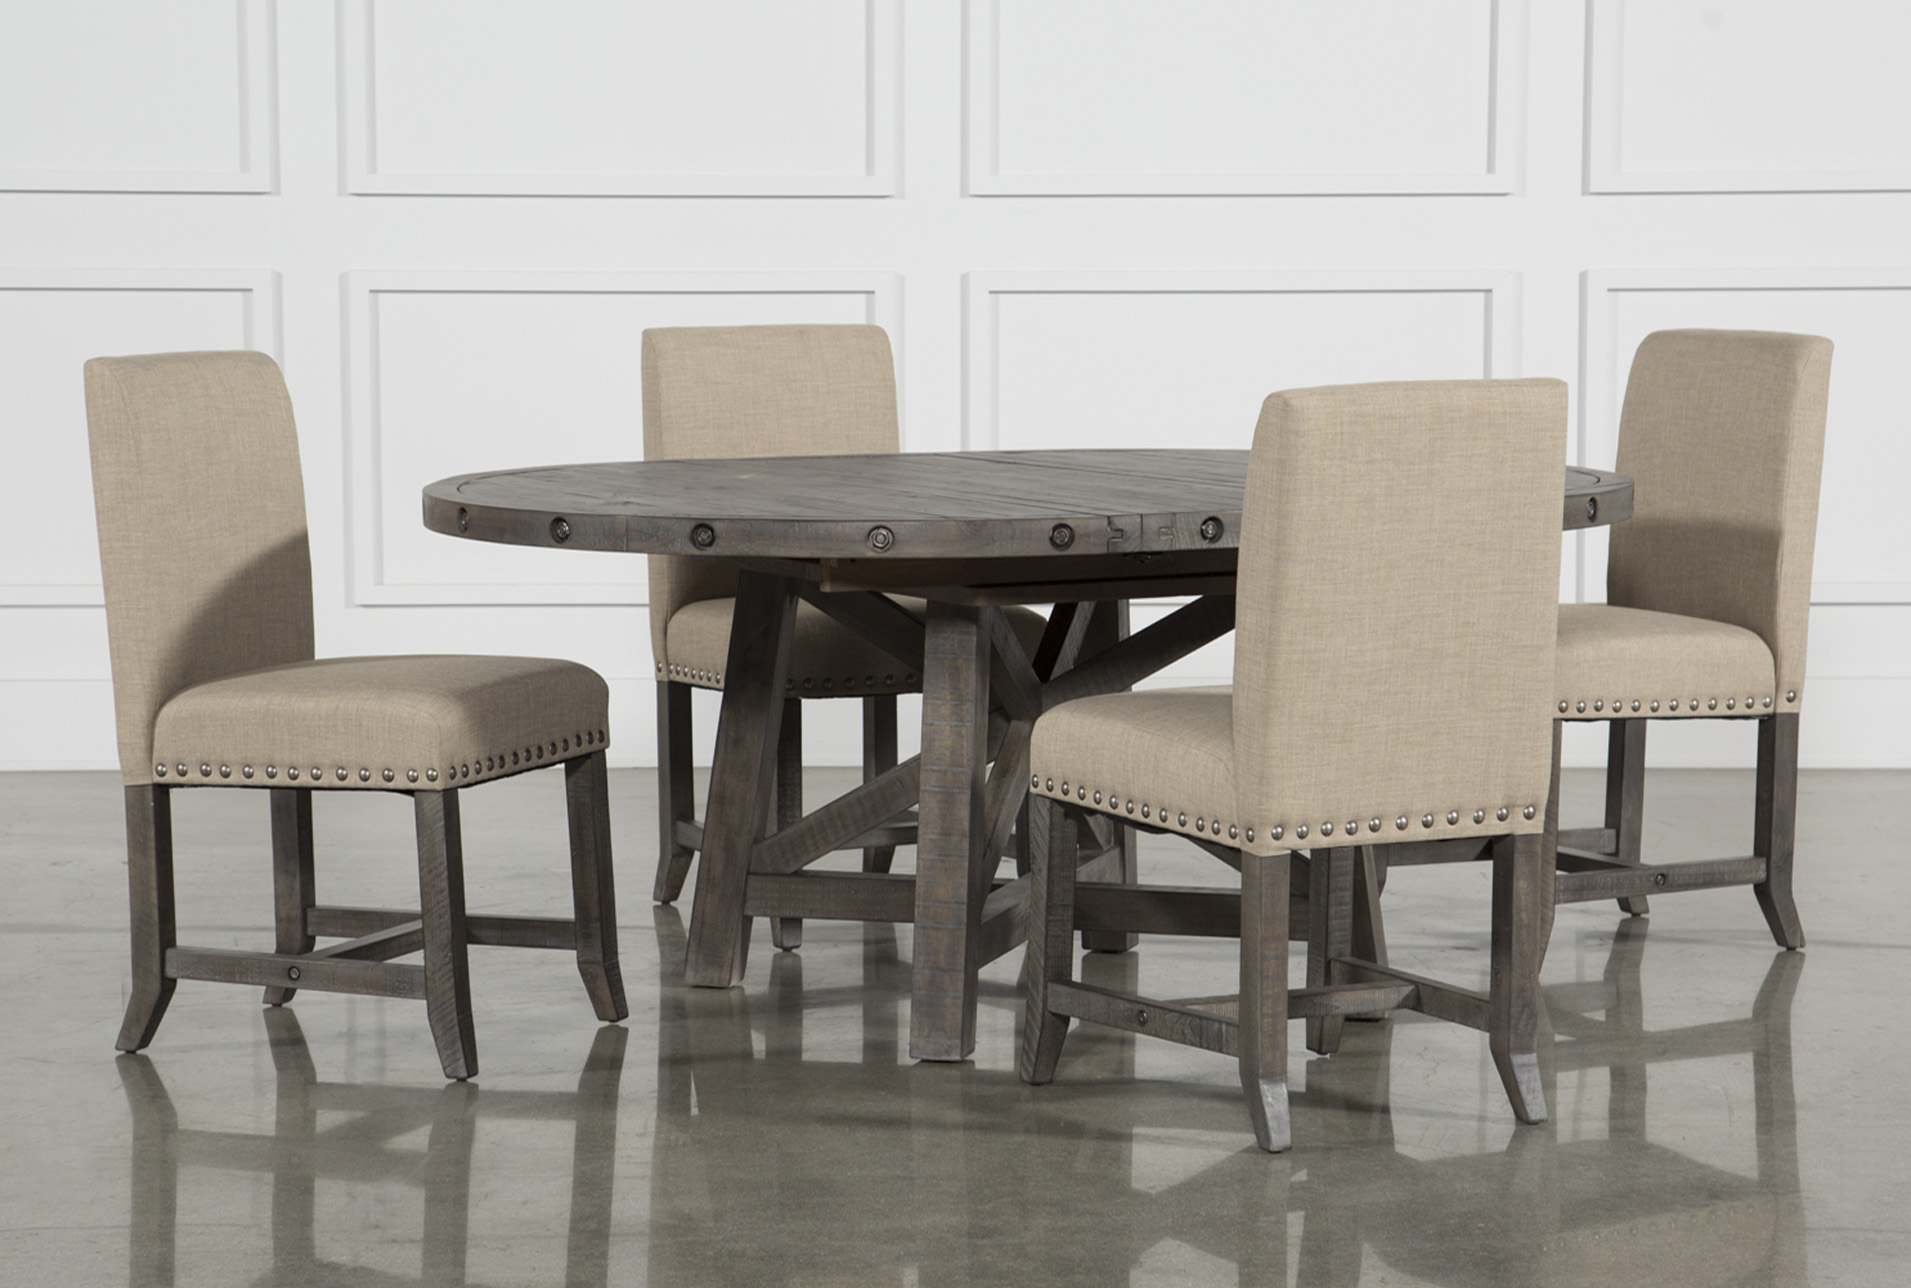 Jaxon Grey 5 Piece Round Extension Dining Set W/Upholstered Chairs   360